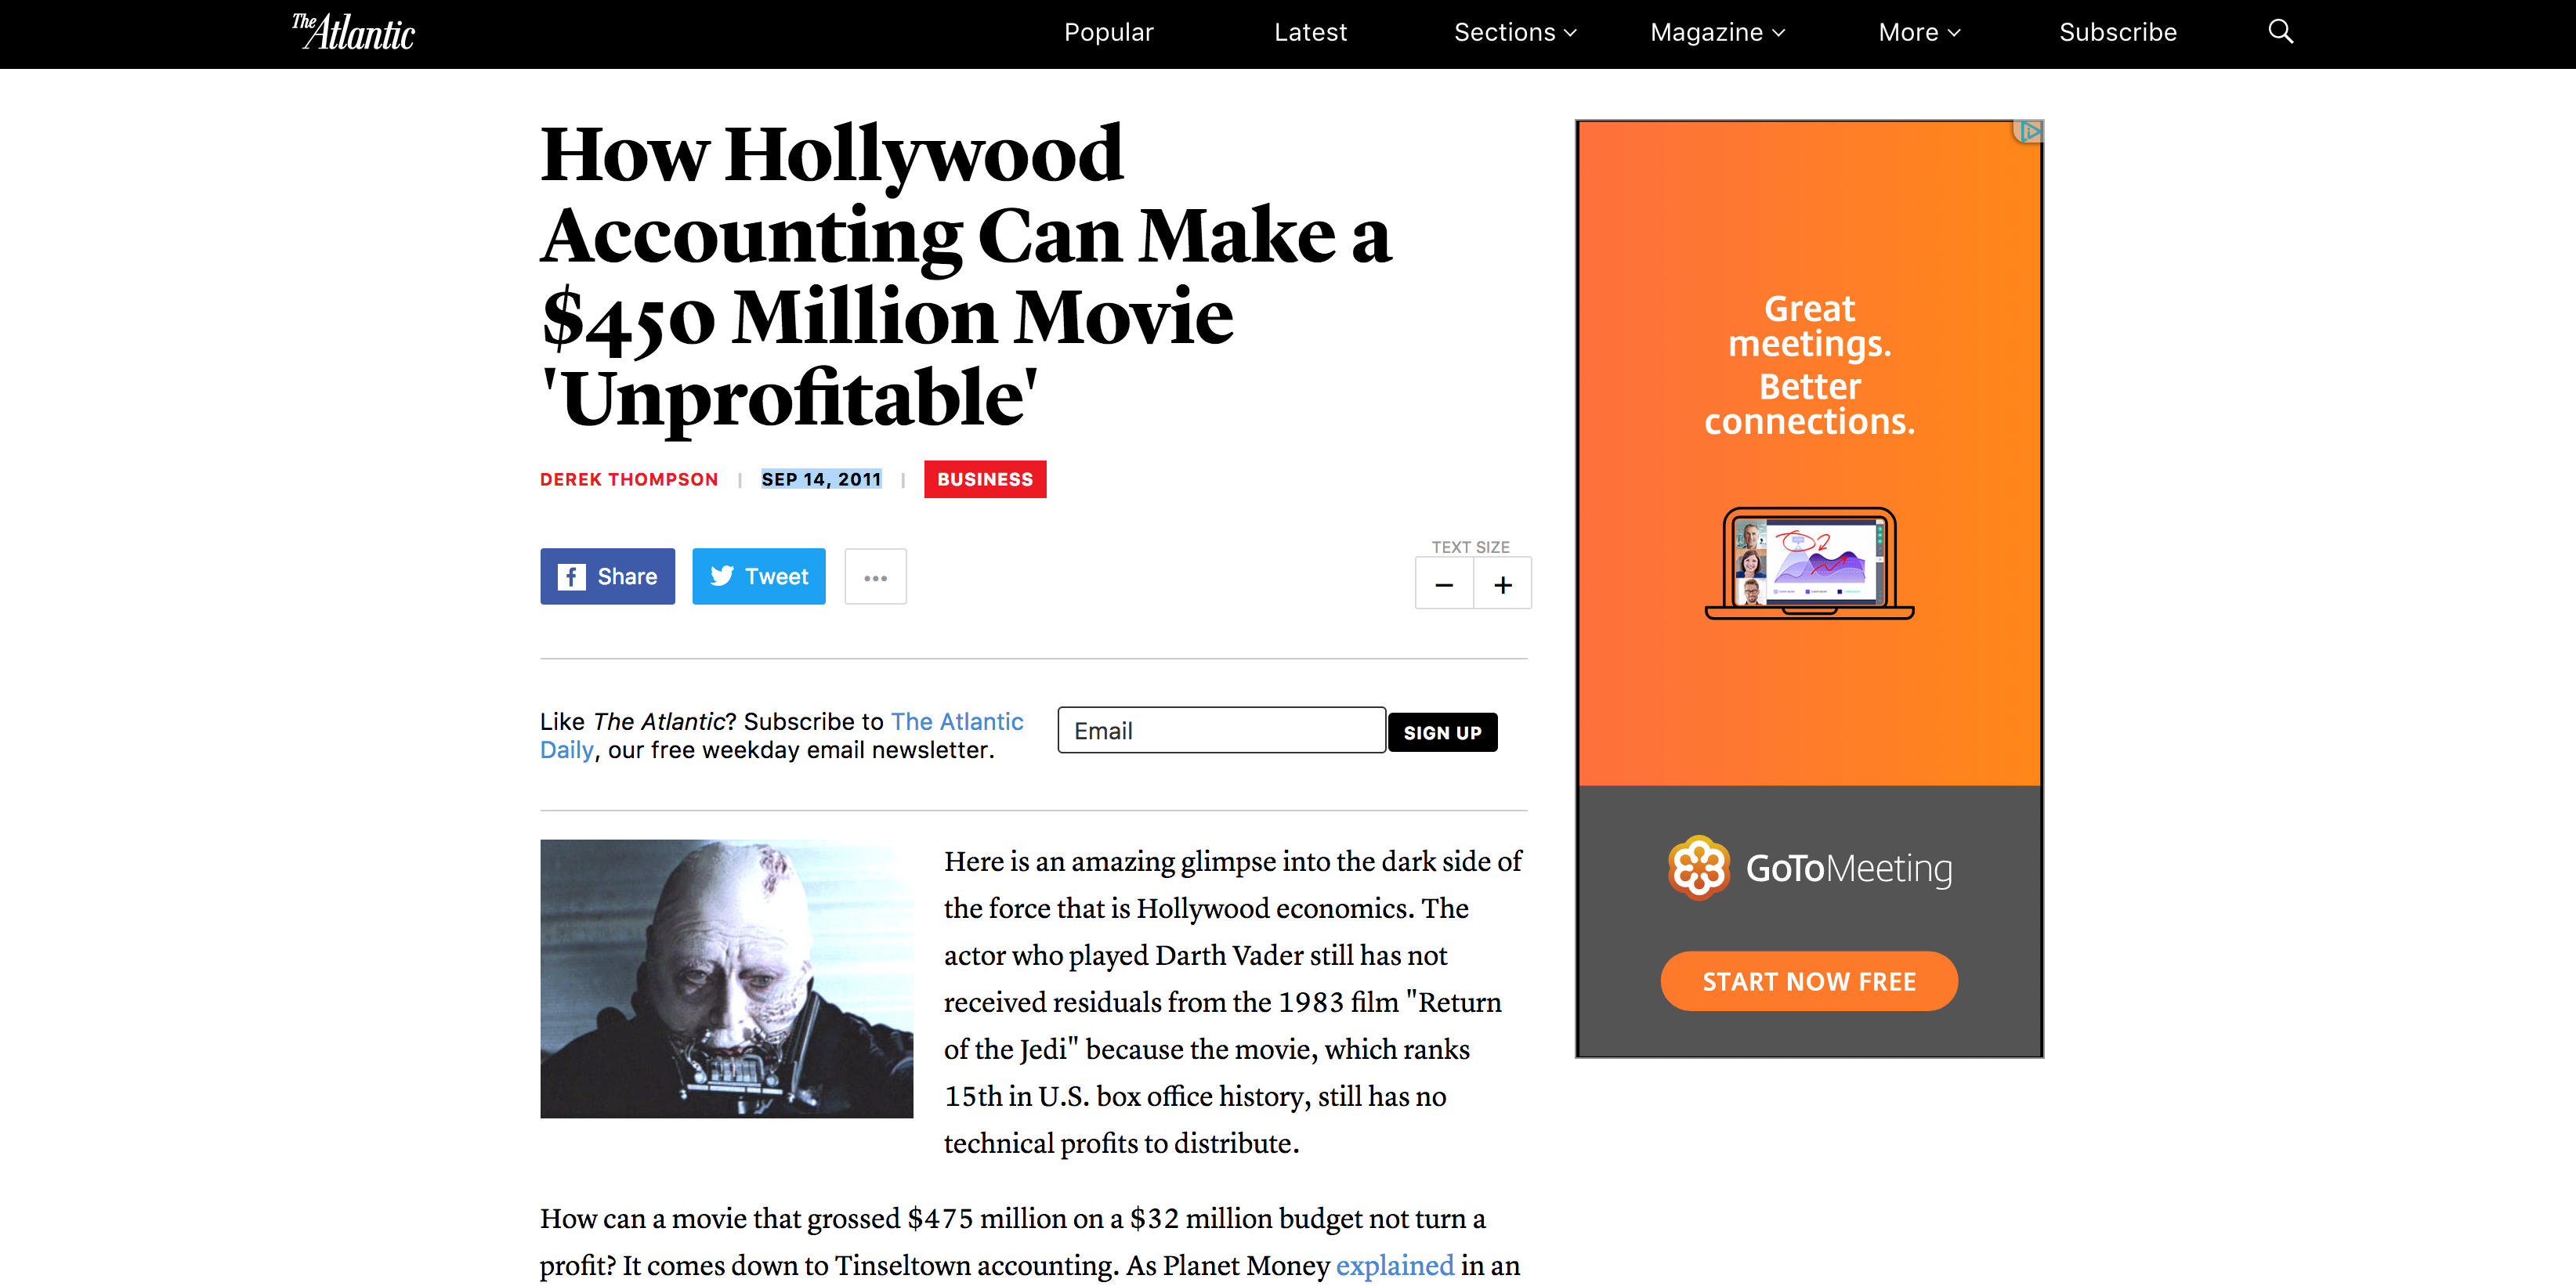 Fairness Rocks | How Hollywood Accounting Can Make a $450 Million